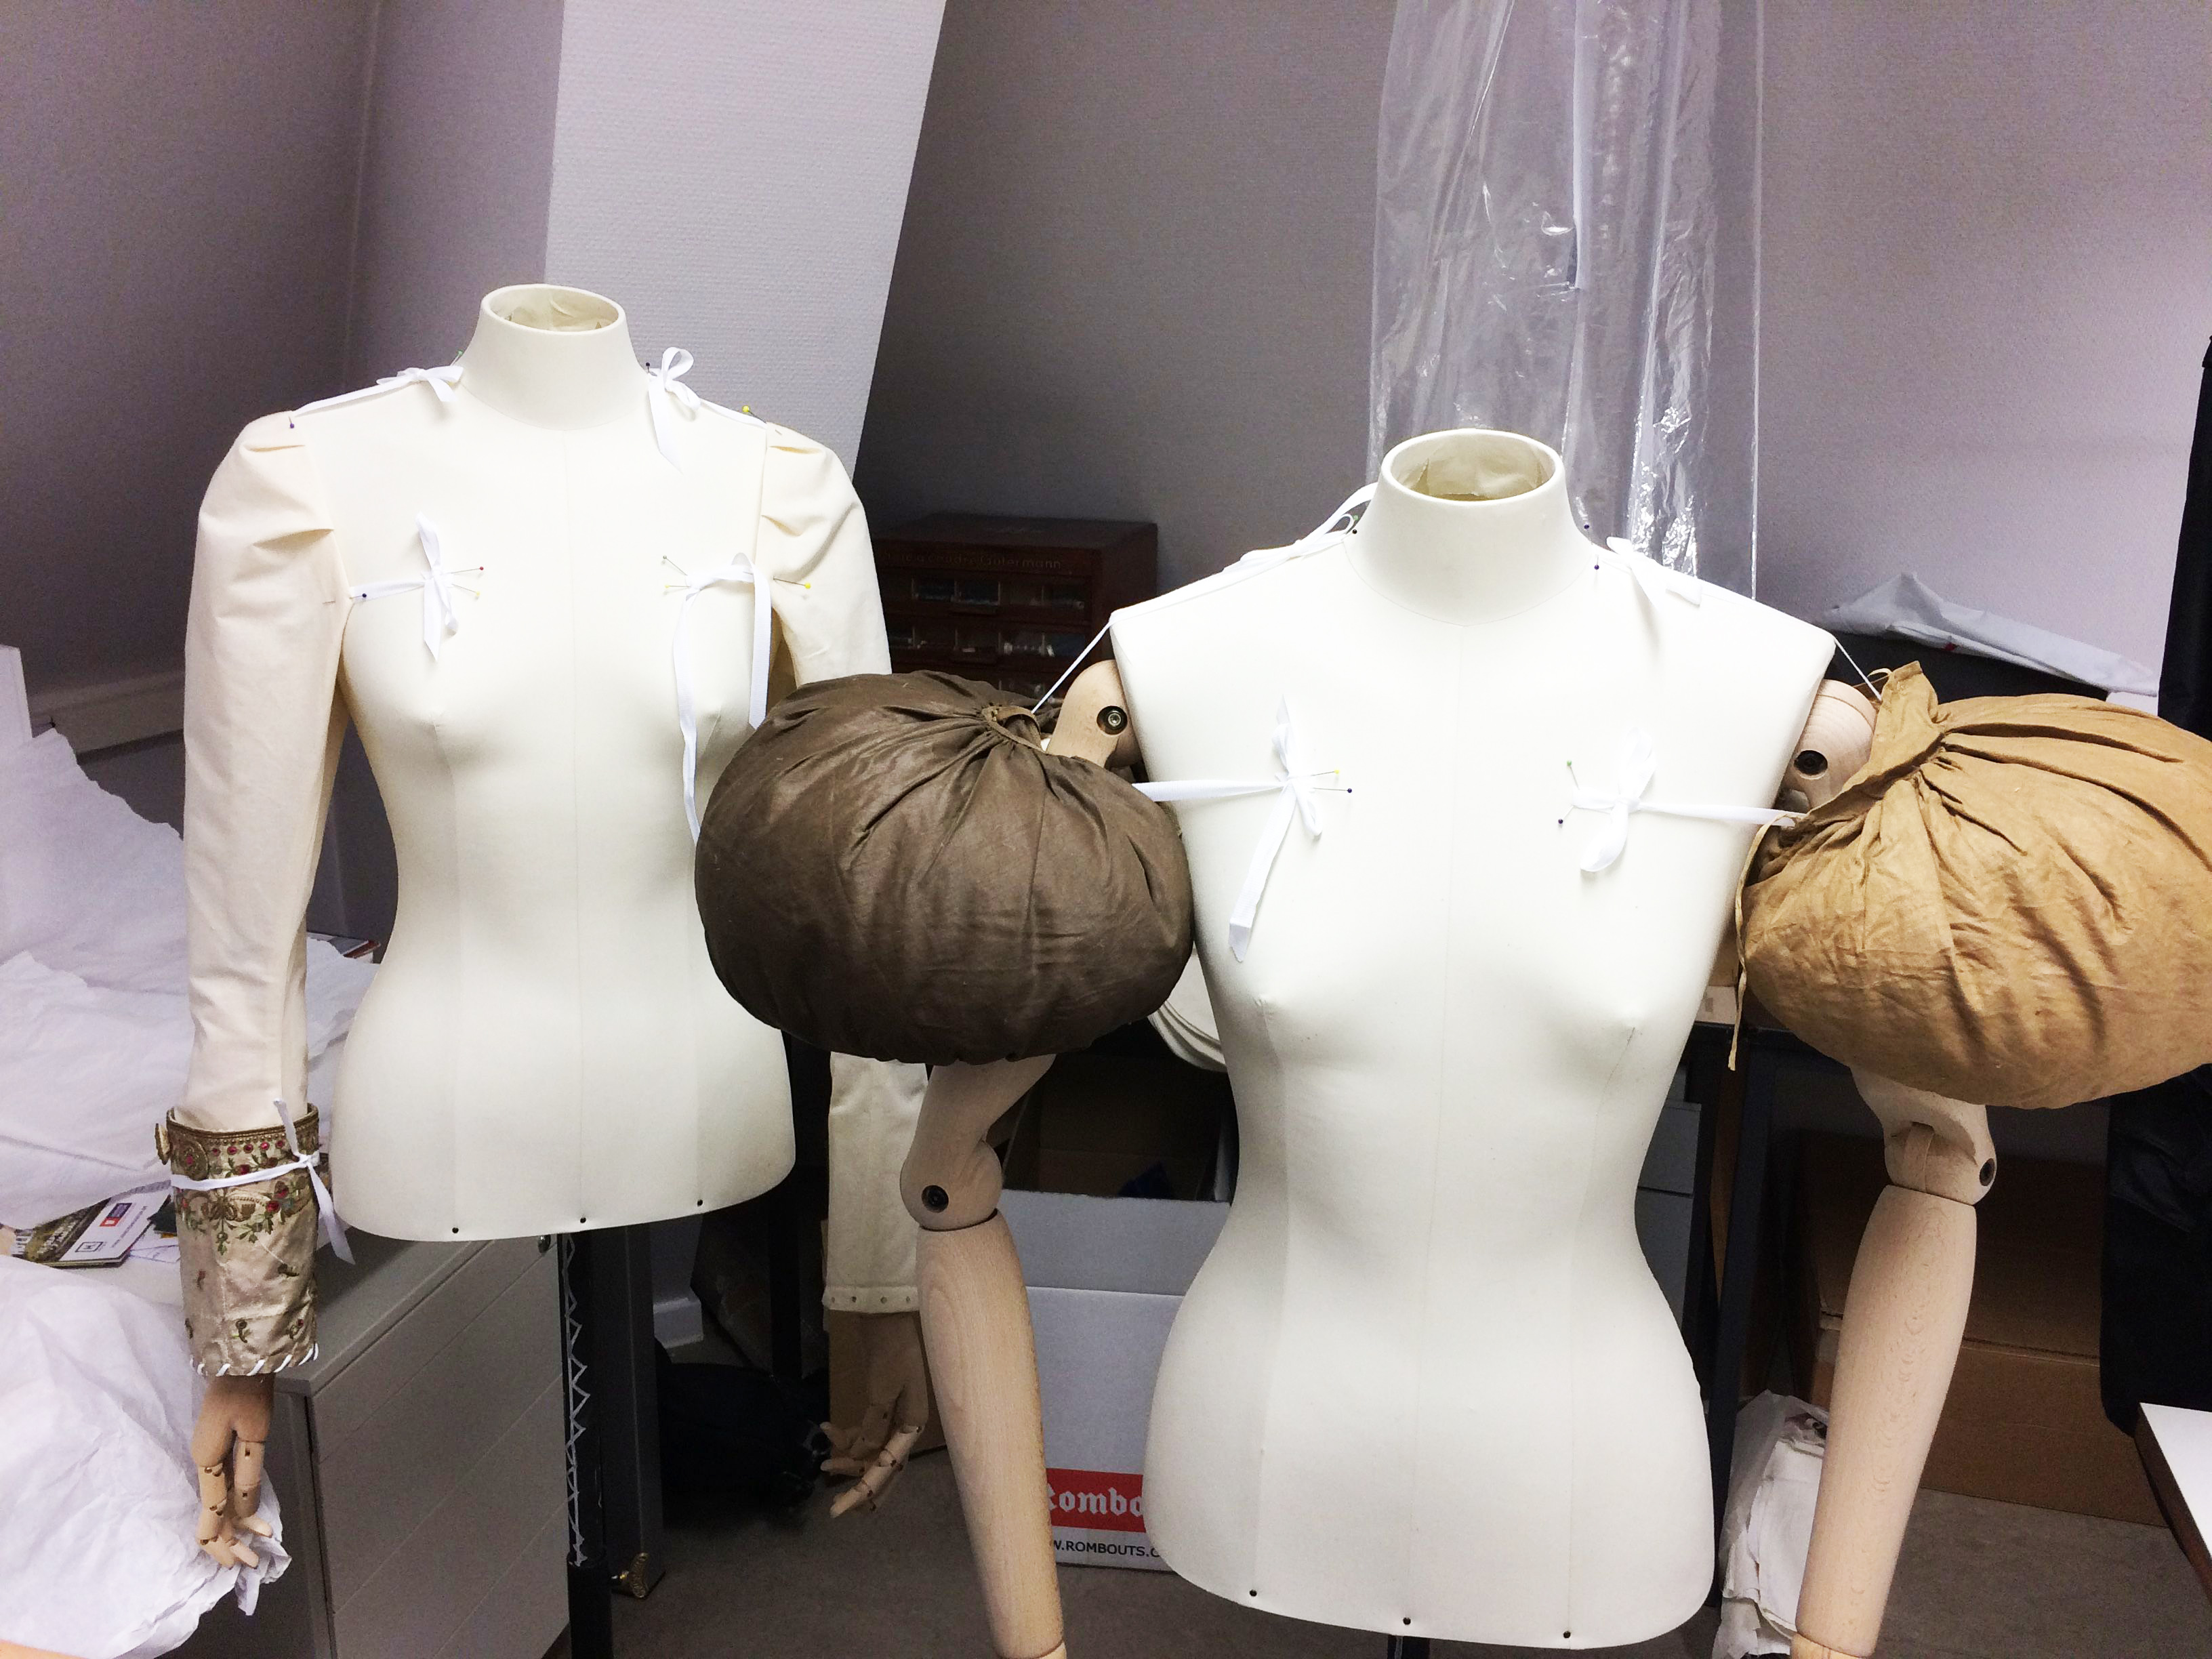 Two mannequins with puffed sleeves